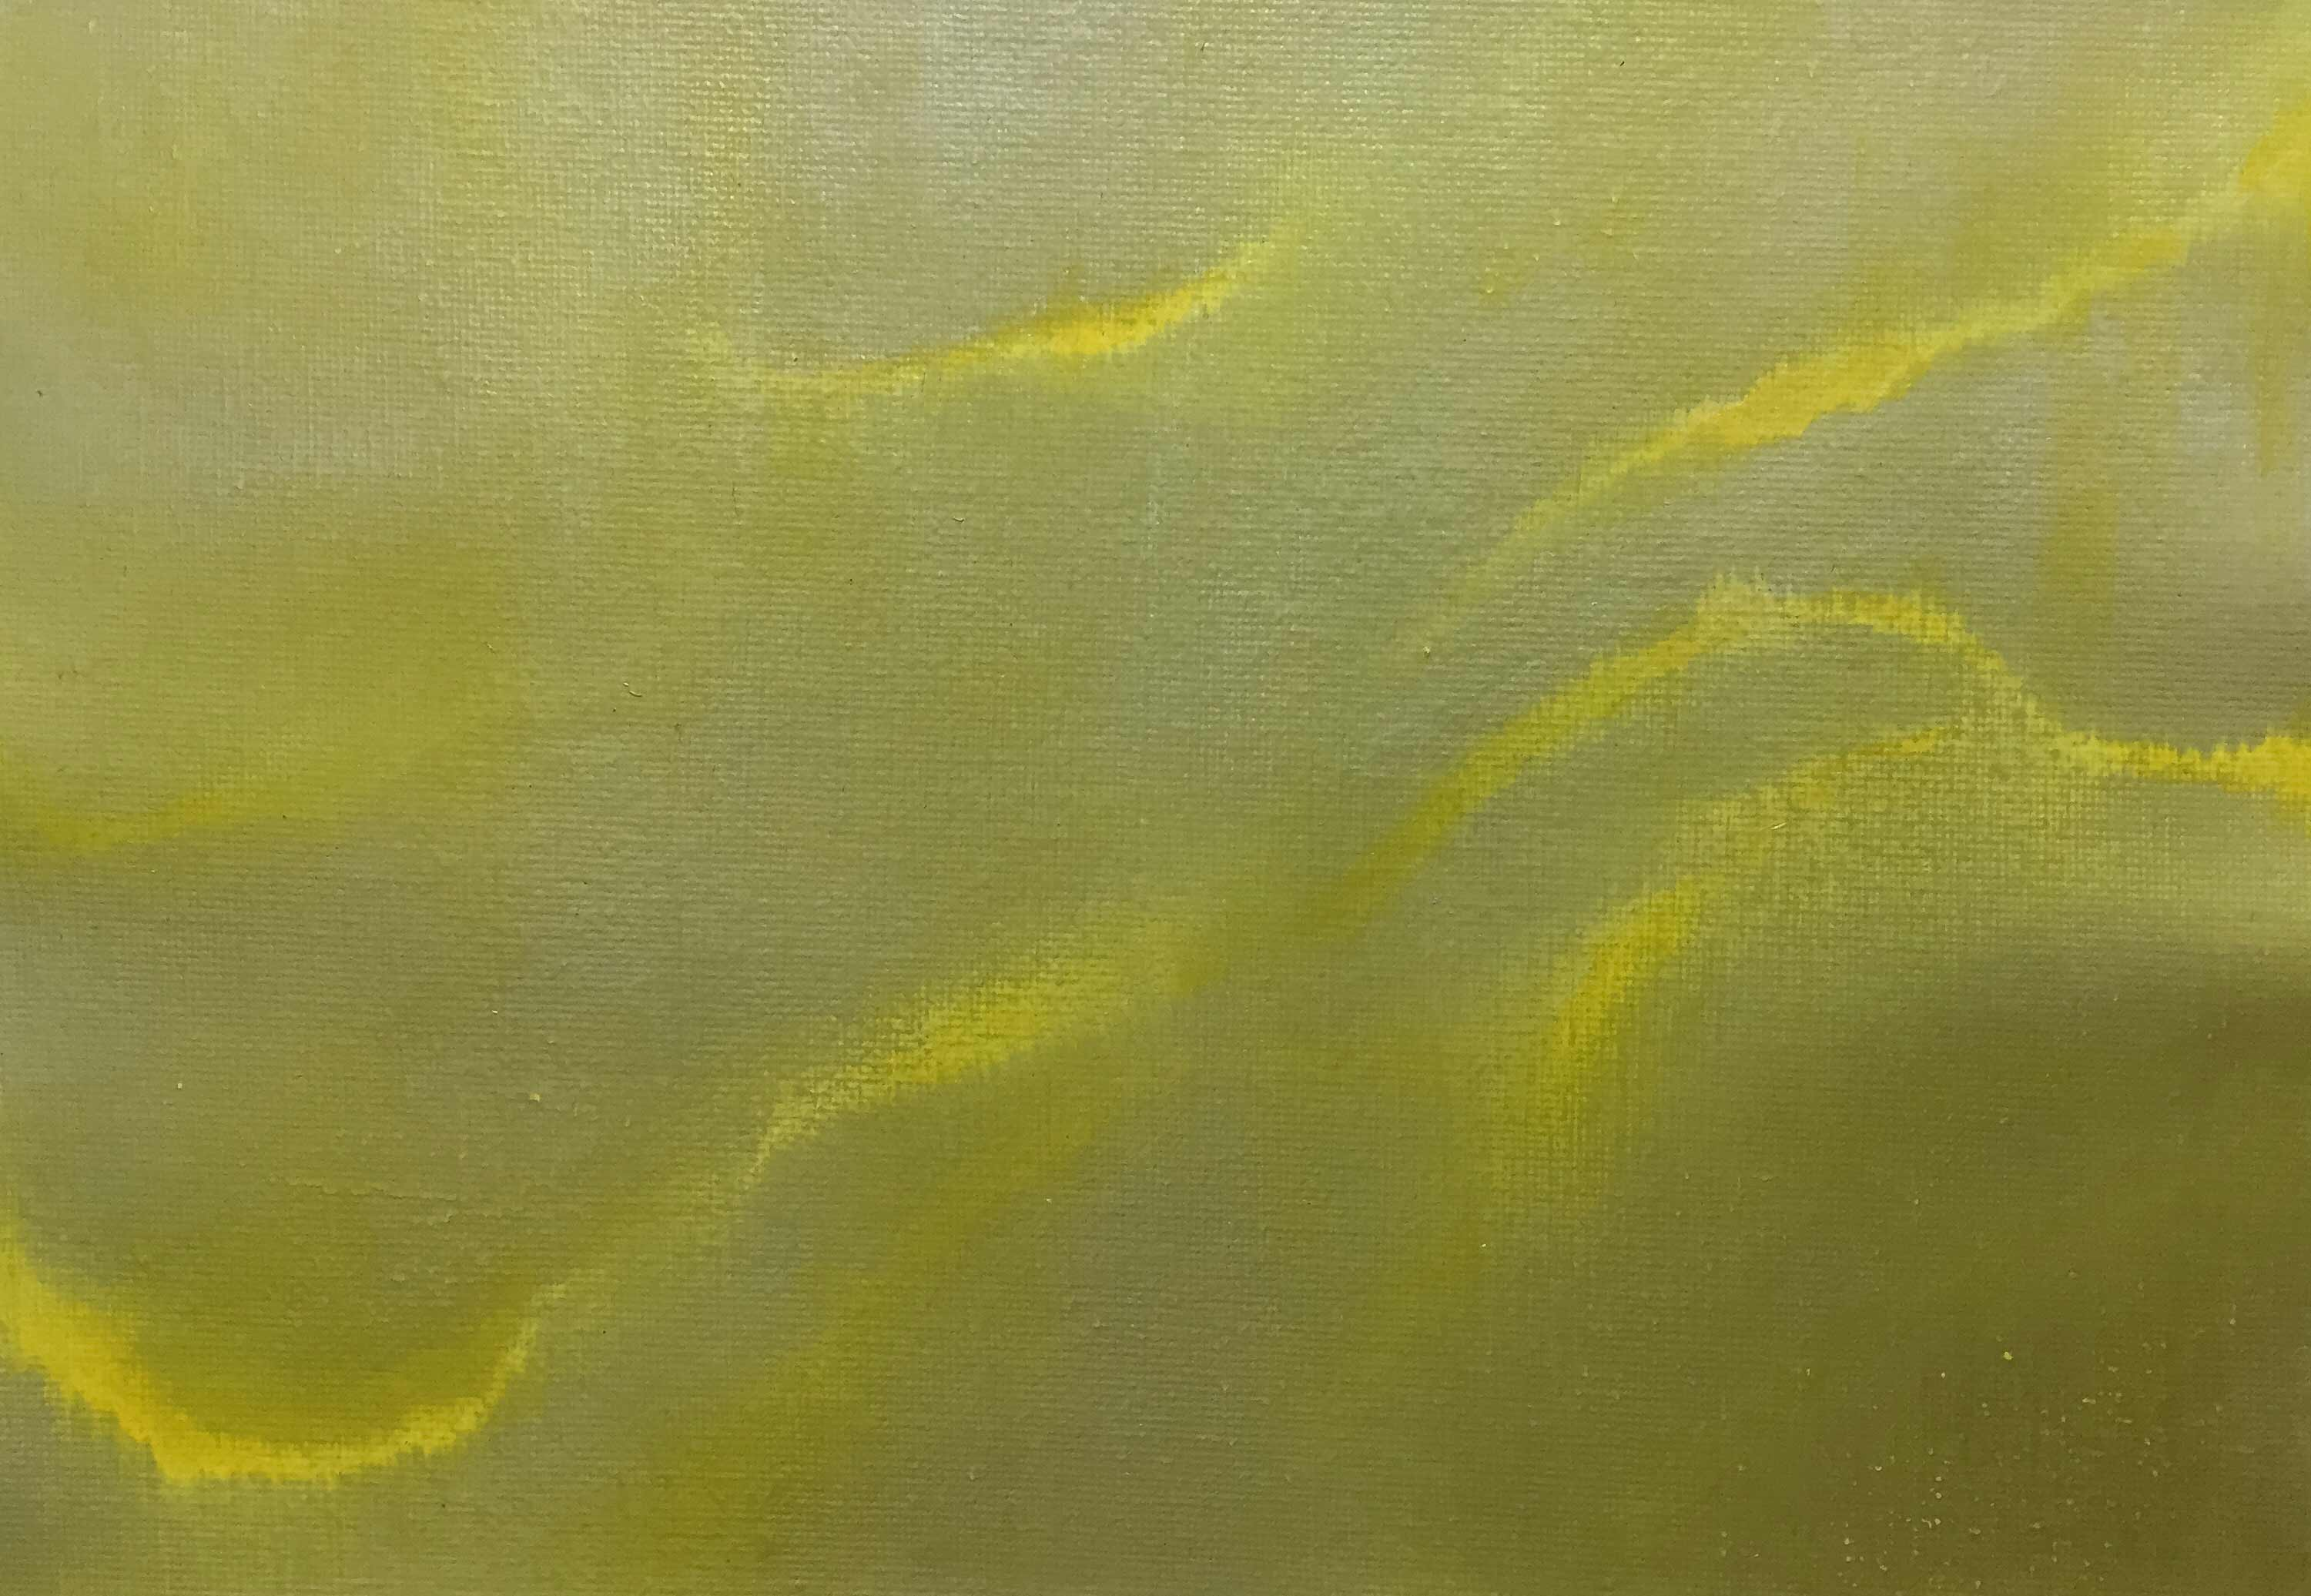 "Pedro A. Figueredo. ""Unfettered No. 4: Yellow"" (2016). Acrylic on canvas sheet: approximately 7 x 10 in. on canvas sheet 9 x 12 in."